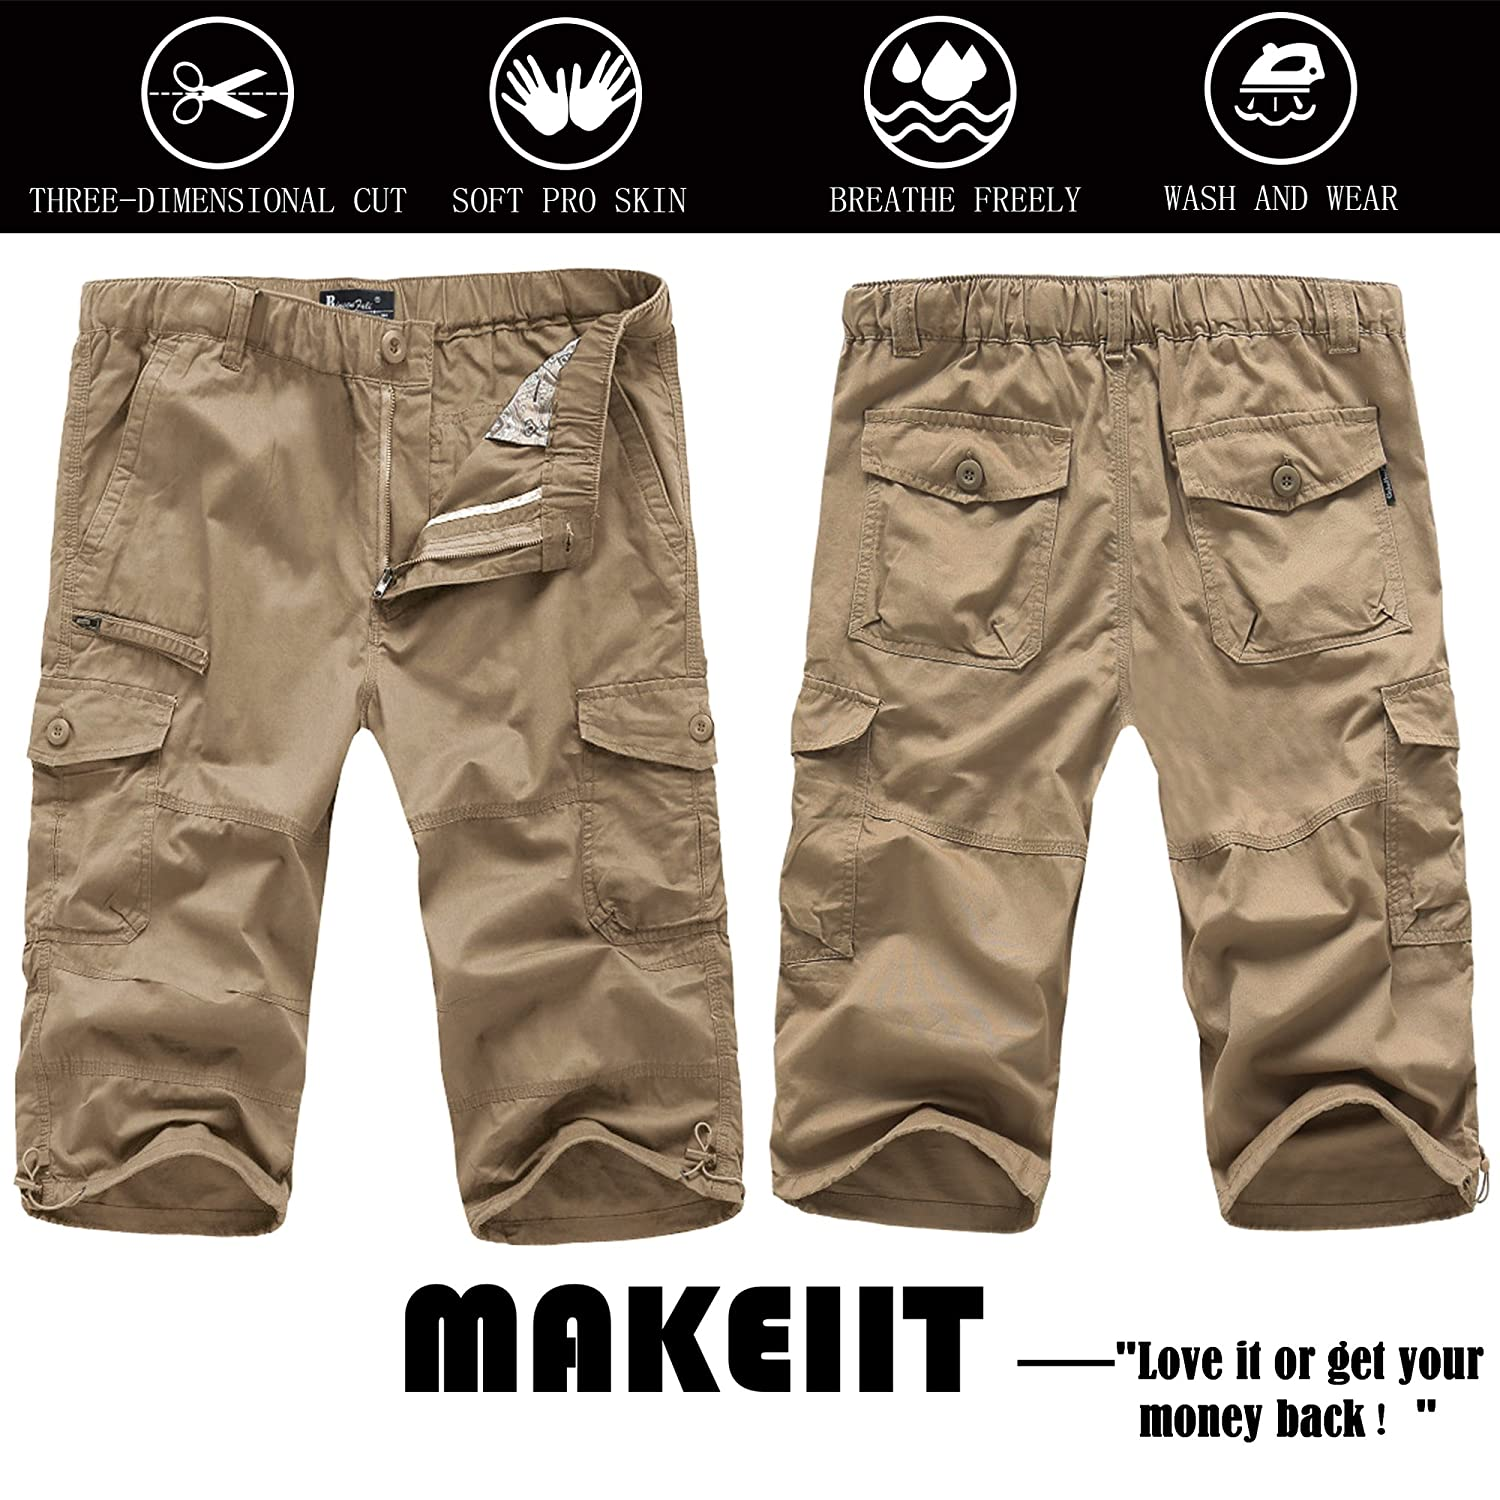 MAKEIIT Mens Classic-Fit 7-Pockets Cargo Short Cotton Pants with Adjustable Drawstring Workout Shorts